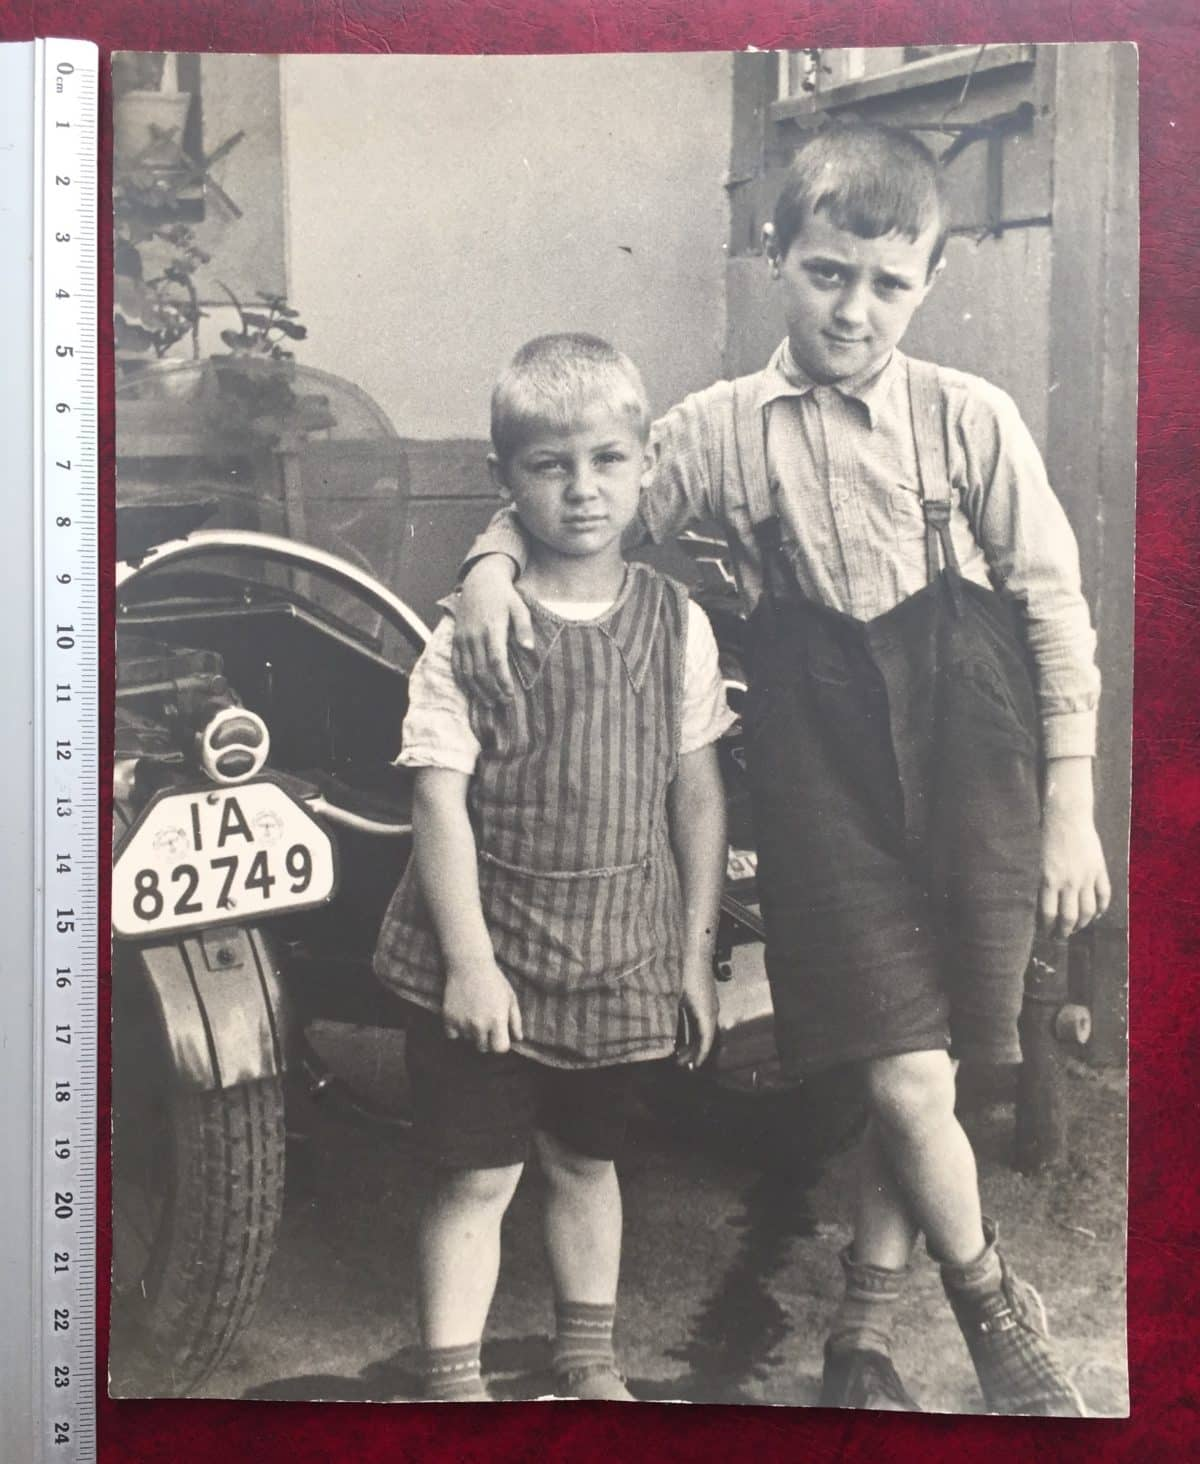 LOT of BIG family photos to inc GREAT pic of Motorbike Number Plate